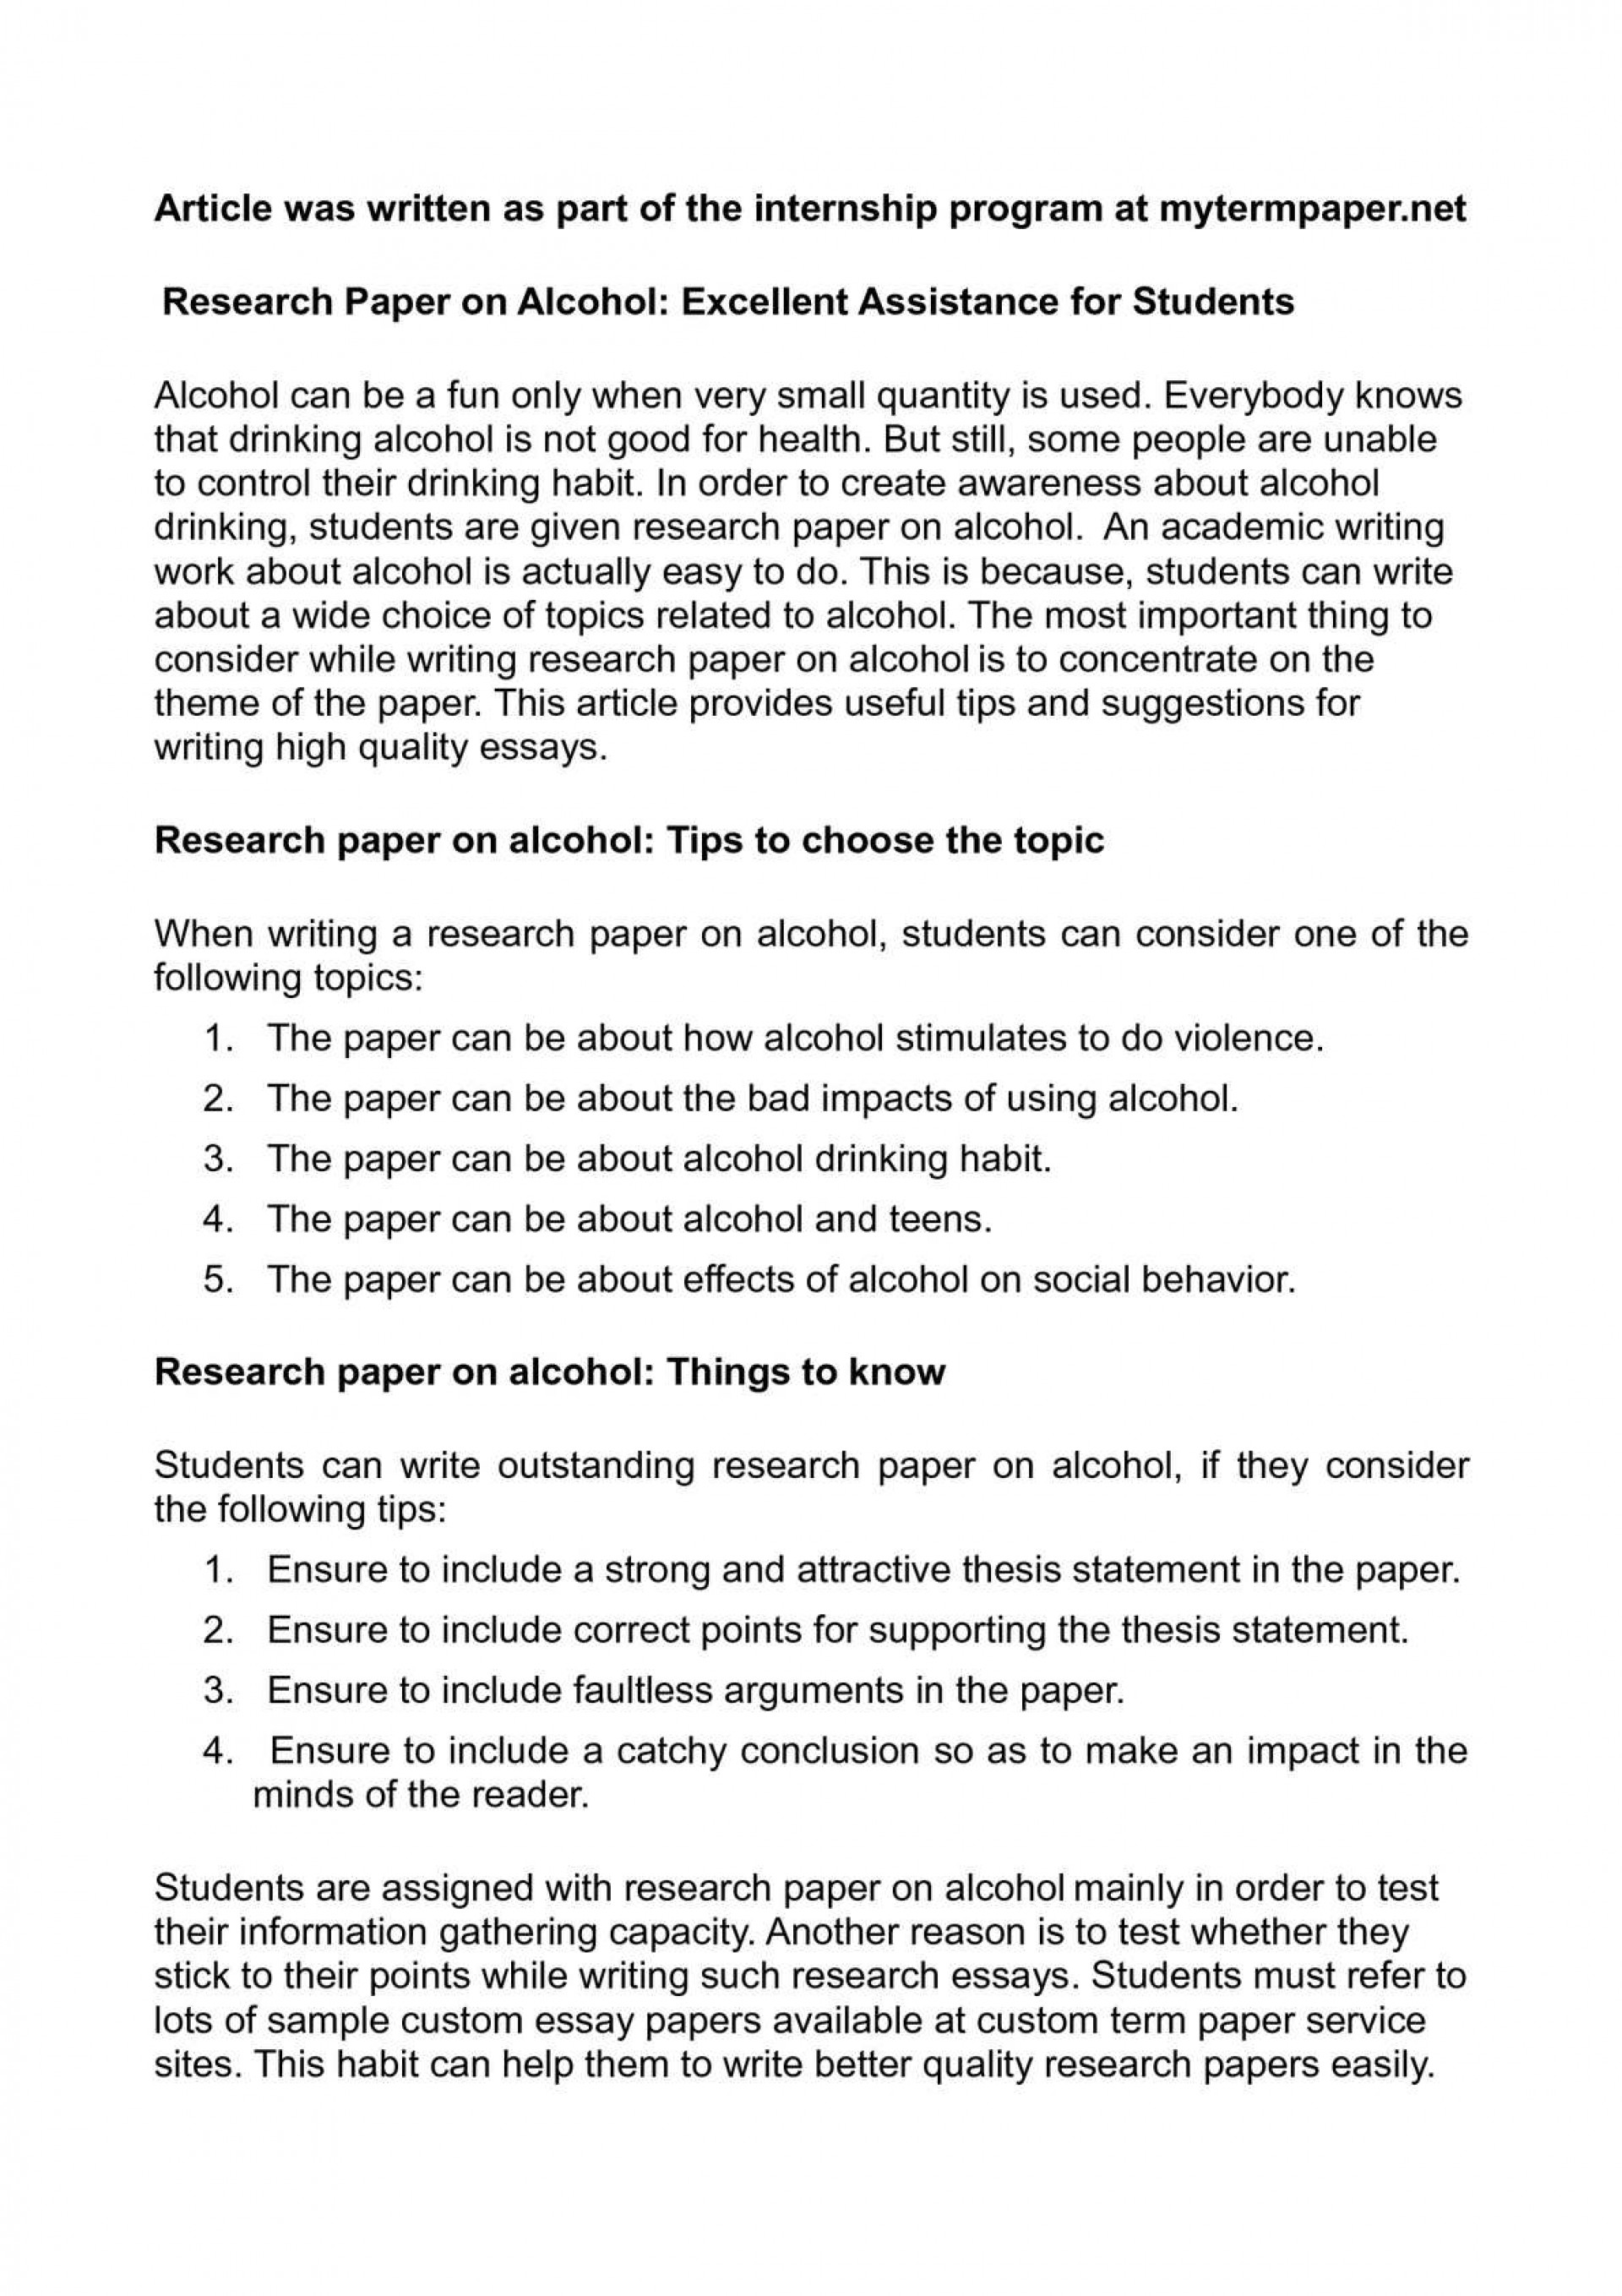 001 Research Paper On Alcohol Awesome Alcoholism And Family Articles Sample Substance Abuse 1920